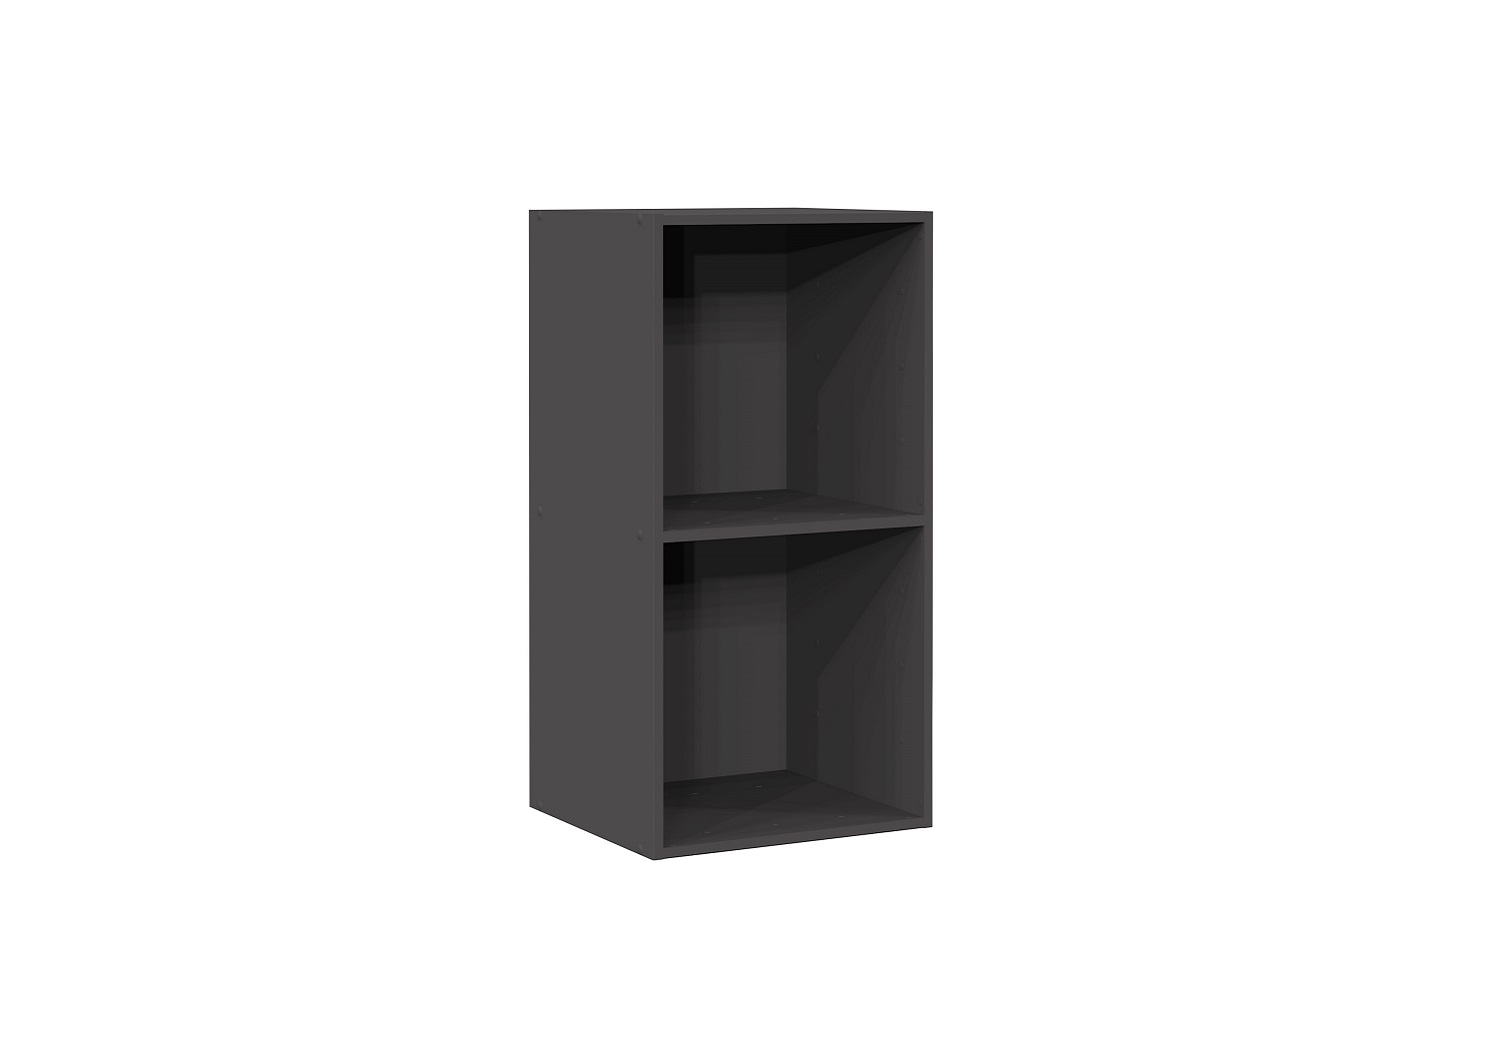 Bilrich Storage Furniture - Multi Kaz 2x1 Cube Grey